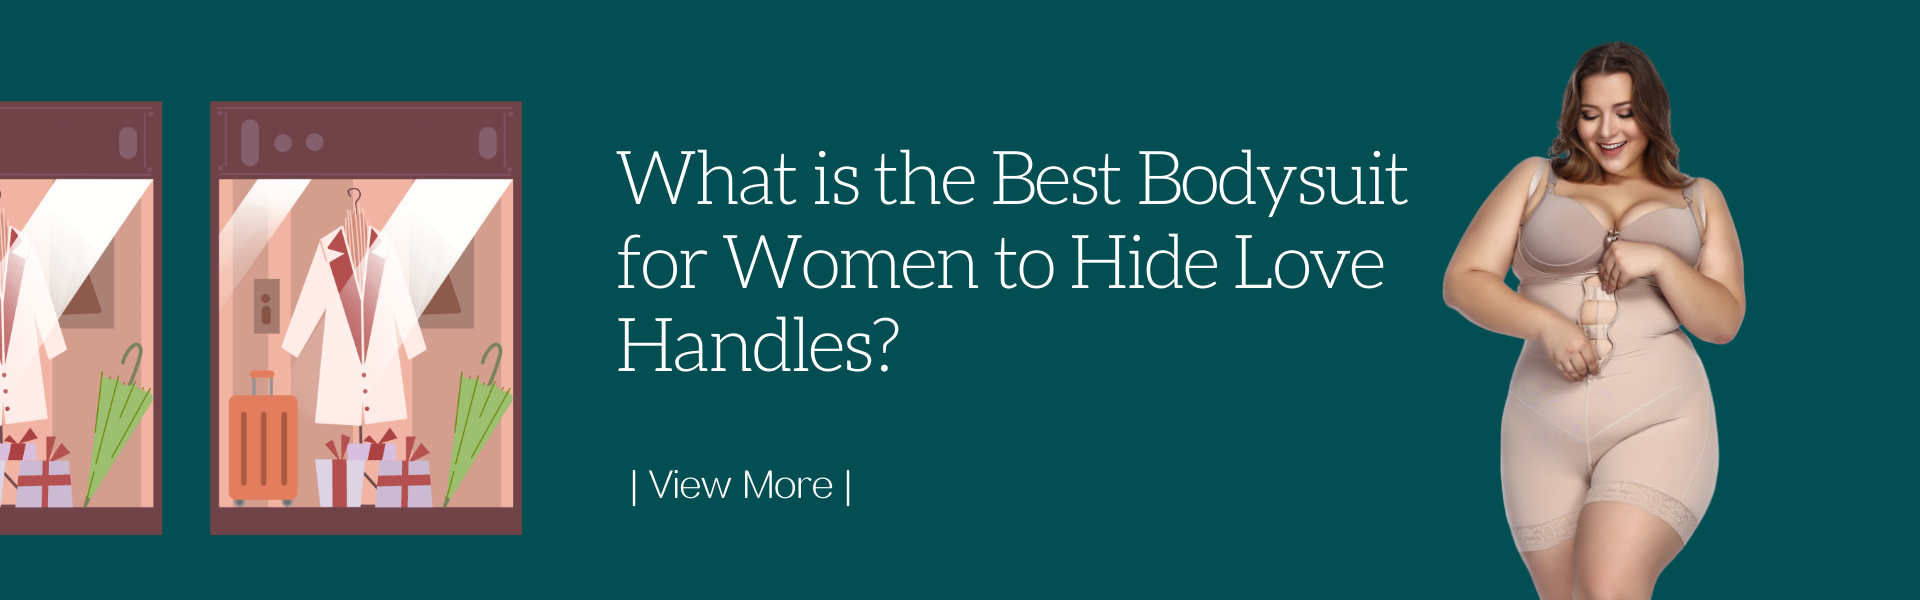 What is the Best Bodysuit for Women to Hide Love Handles?